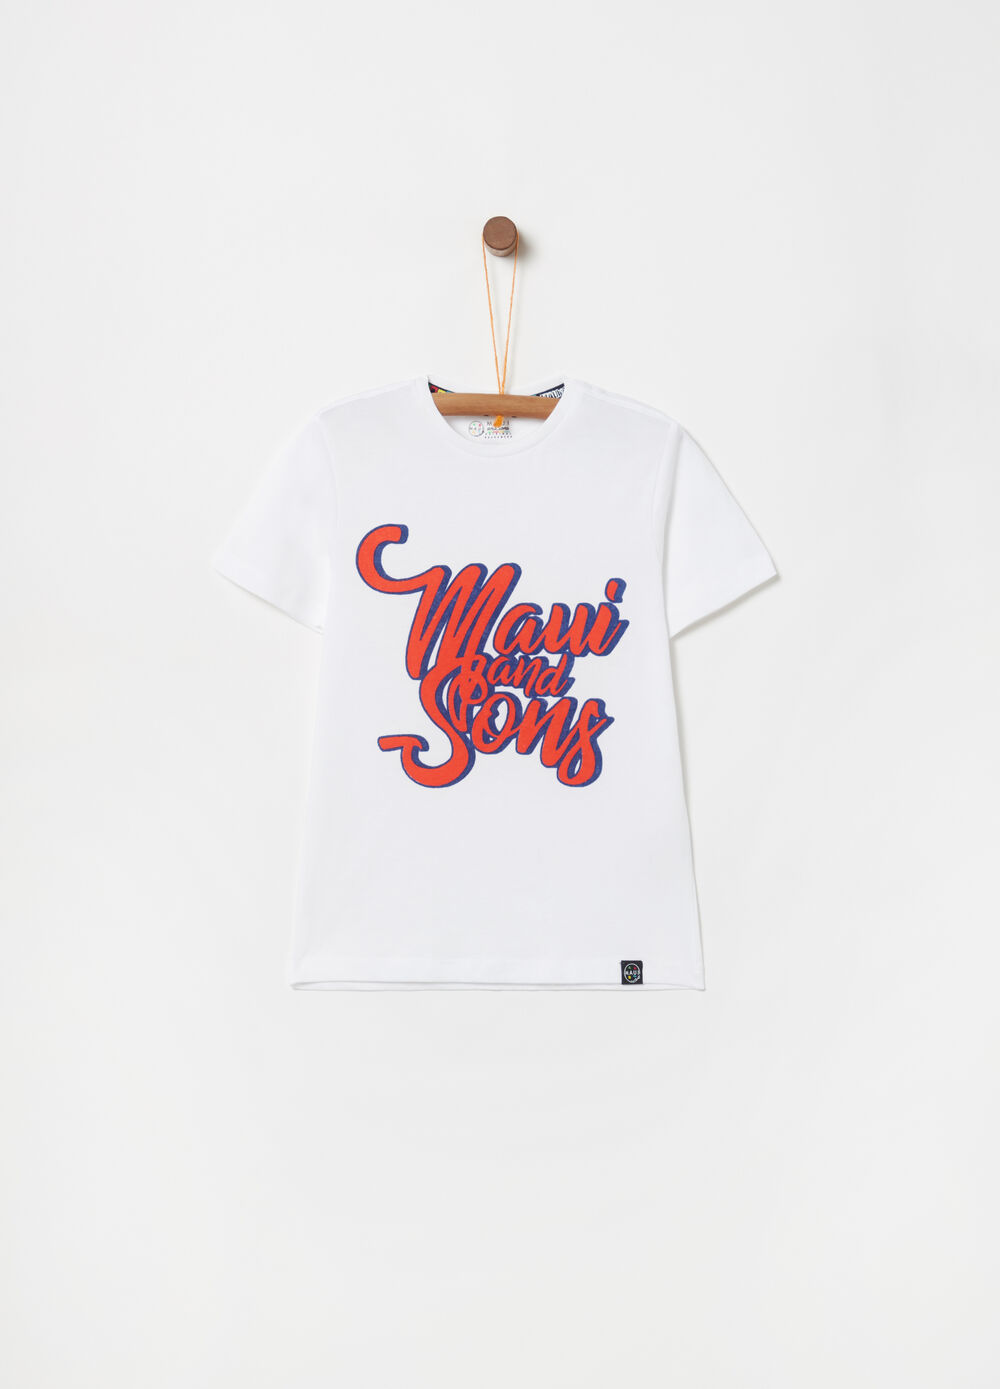 100% cotton T-shirt with Maui and Sons print